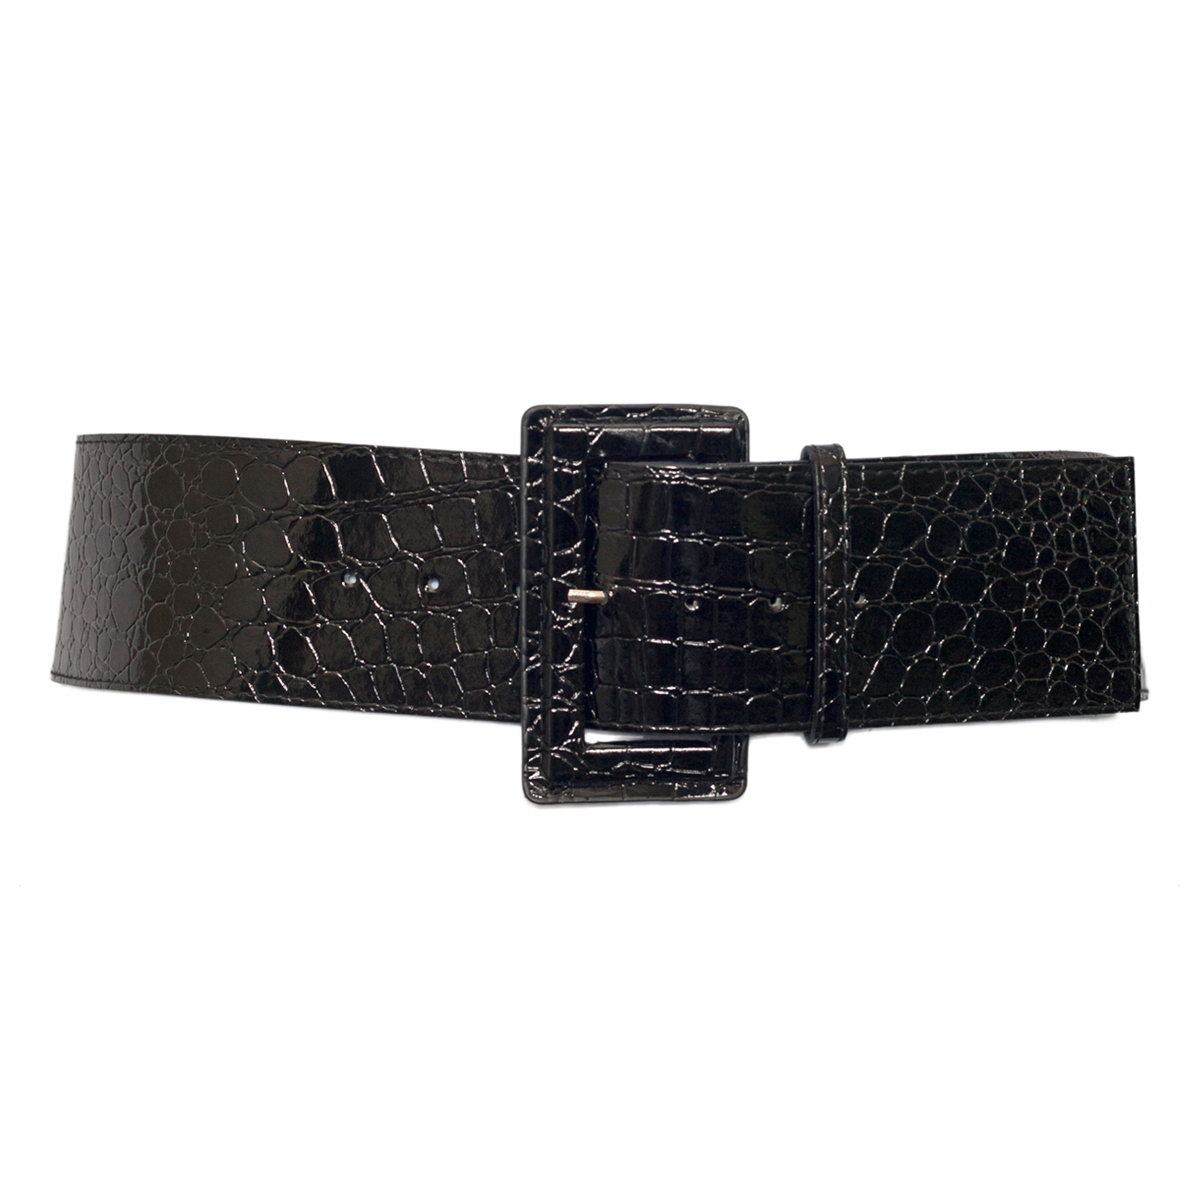 Plus Size Croco Print Patent Leather Belt Black Photo 1